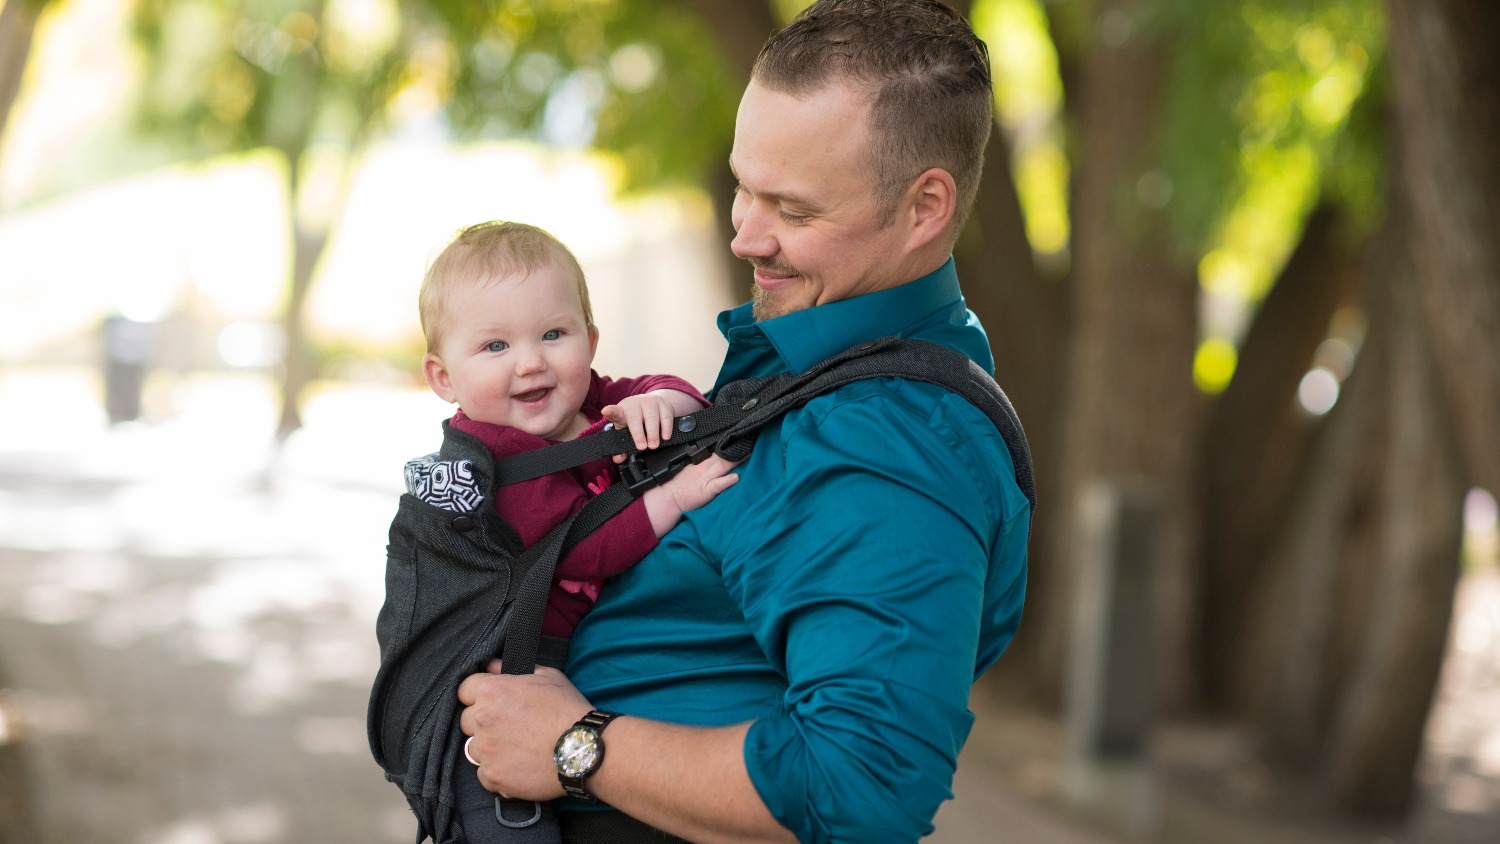 This dad is babywearing proudly